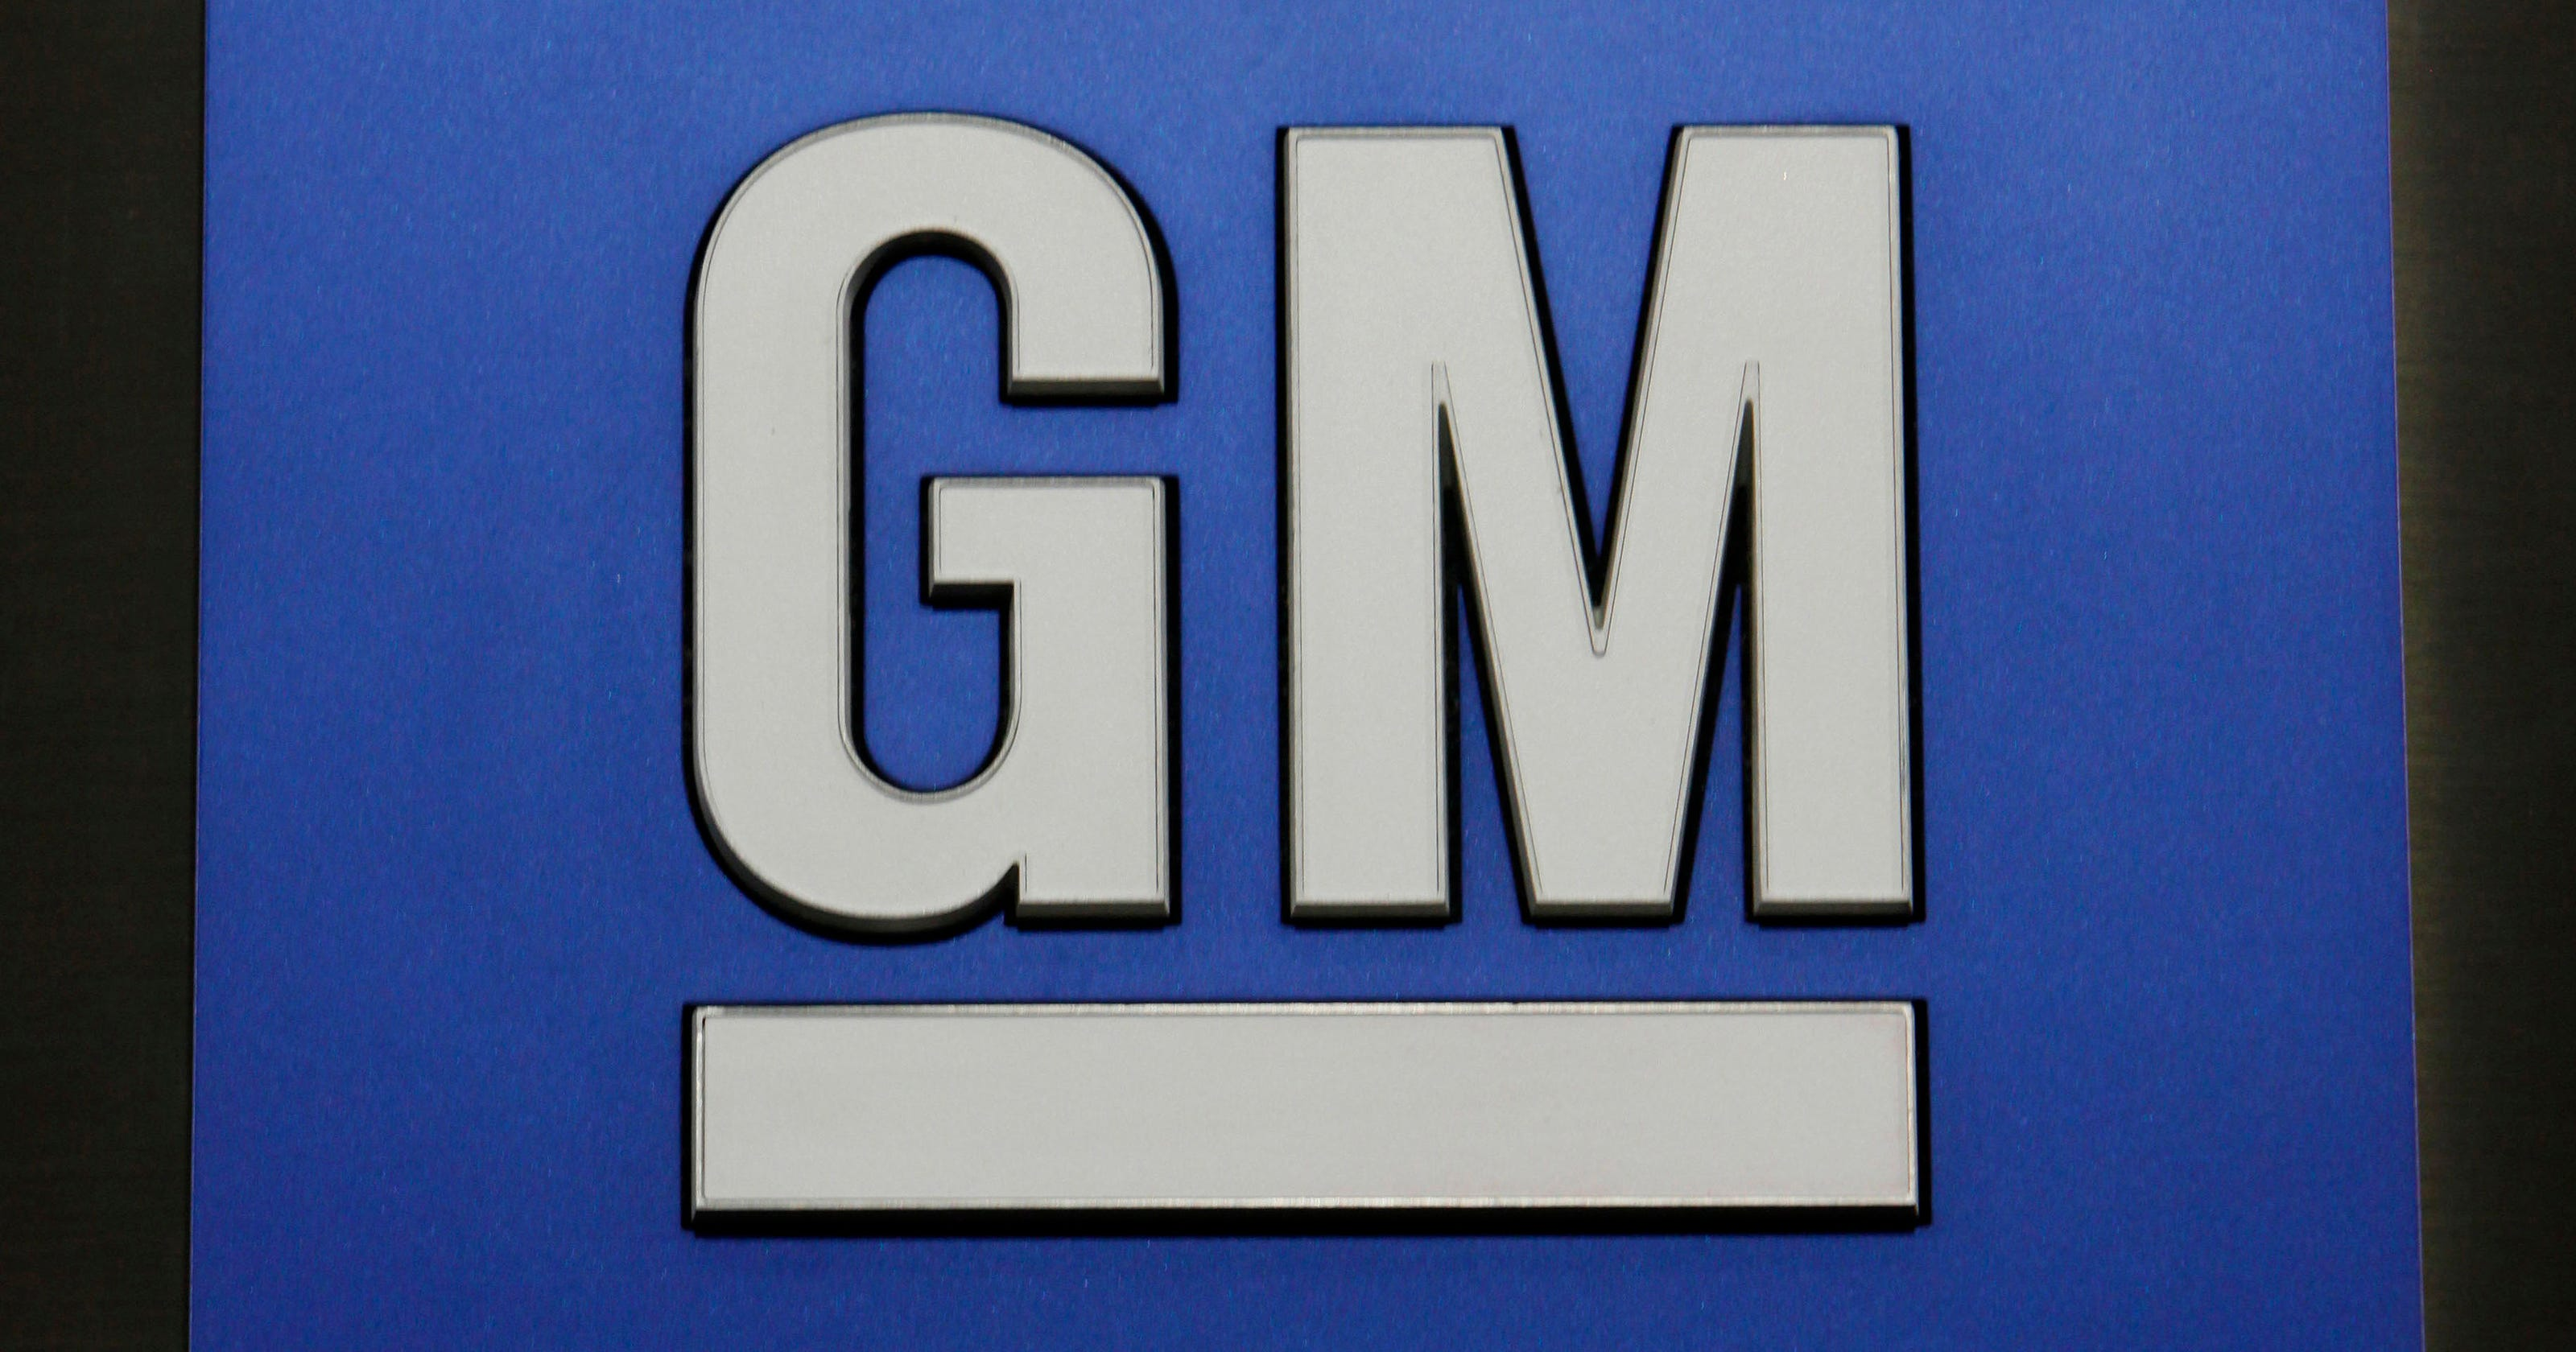 general motors wanted at least 7k workers to take a buyout